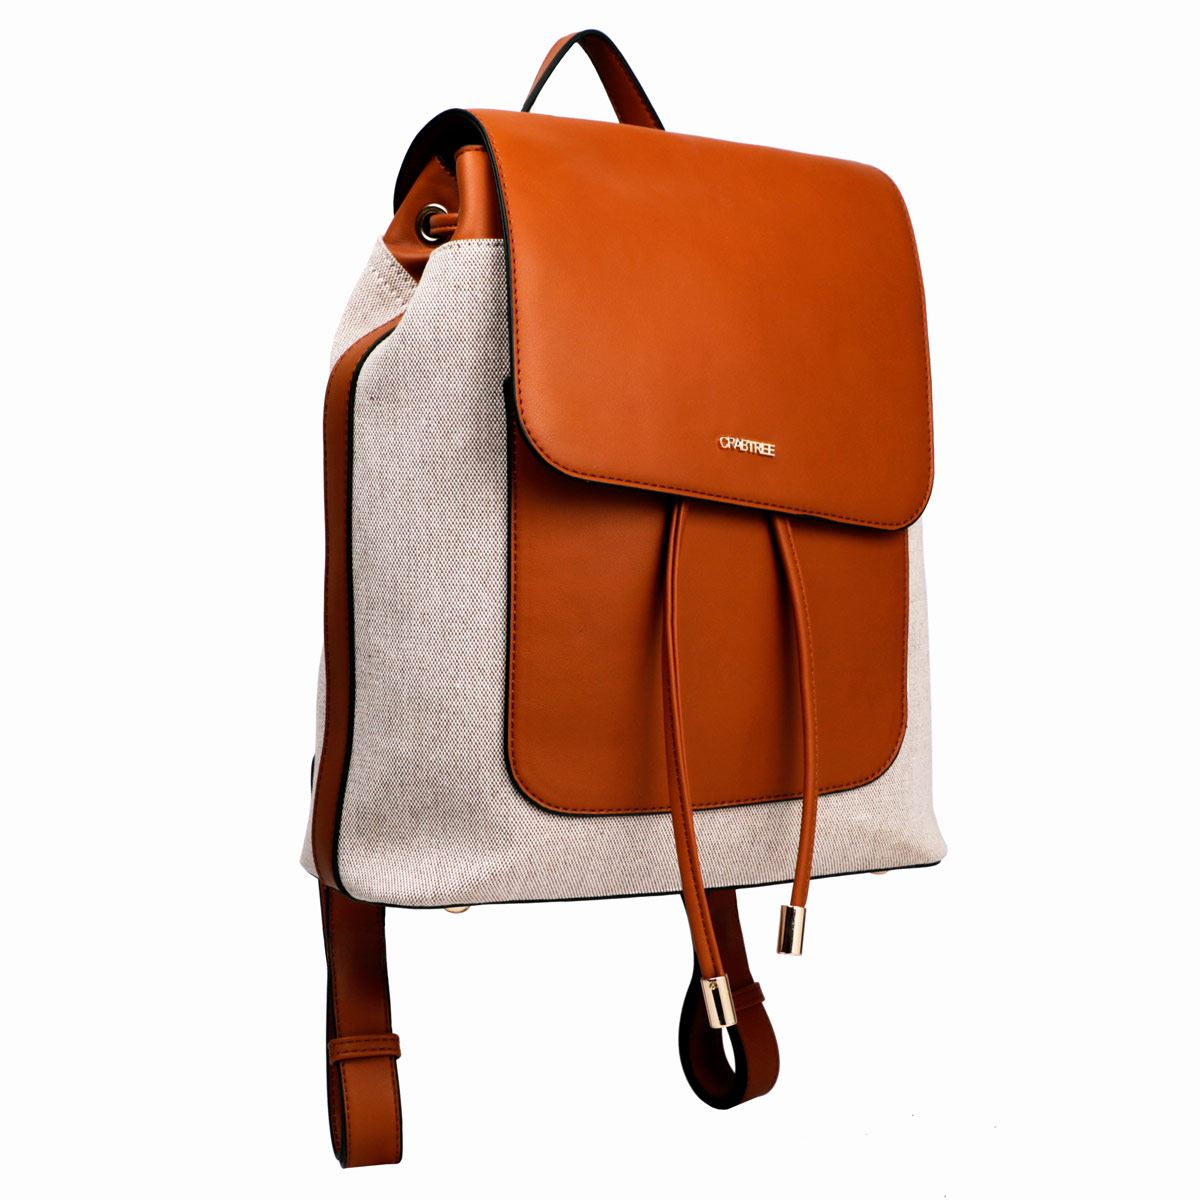 Back pack Crabtree tabaco